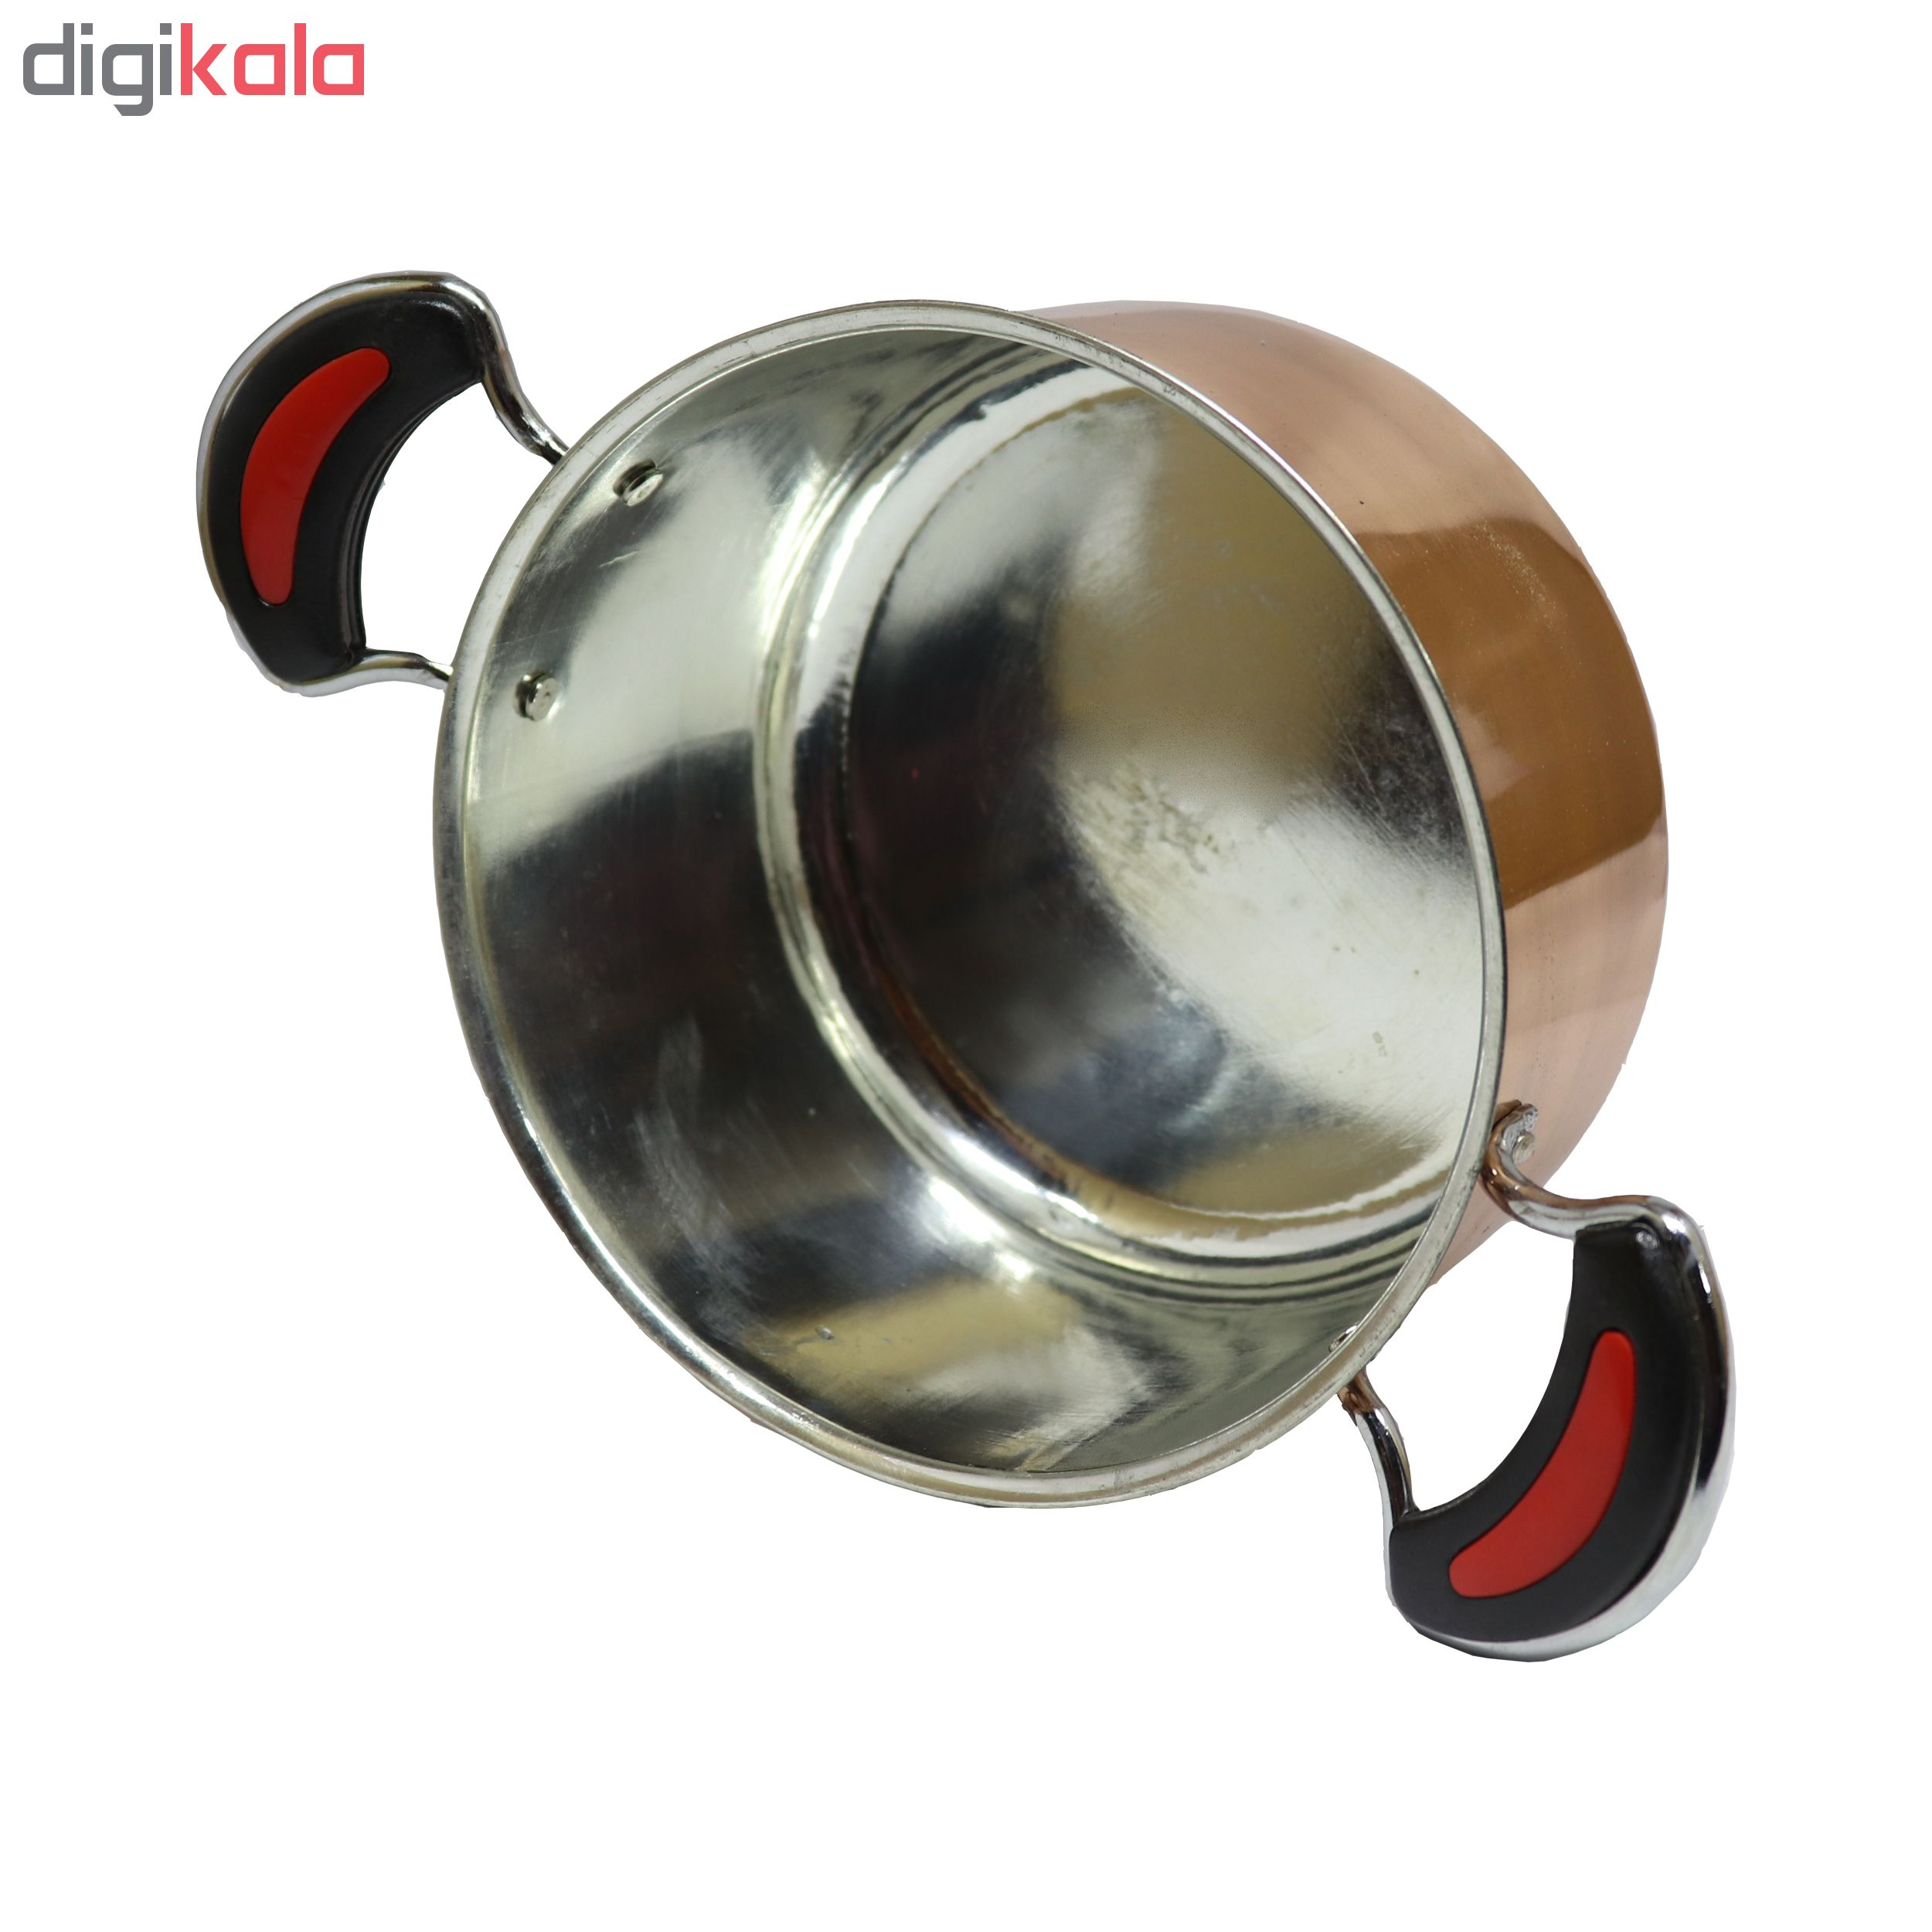 copper pan set, Model TORANG, Code 6